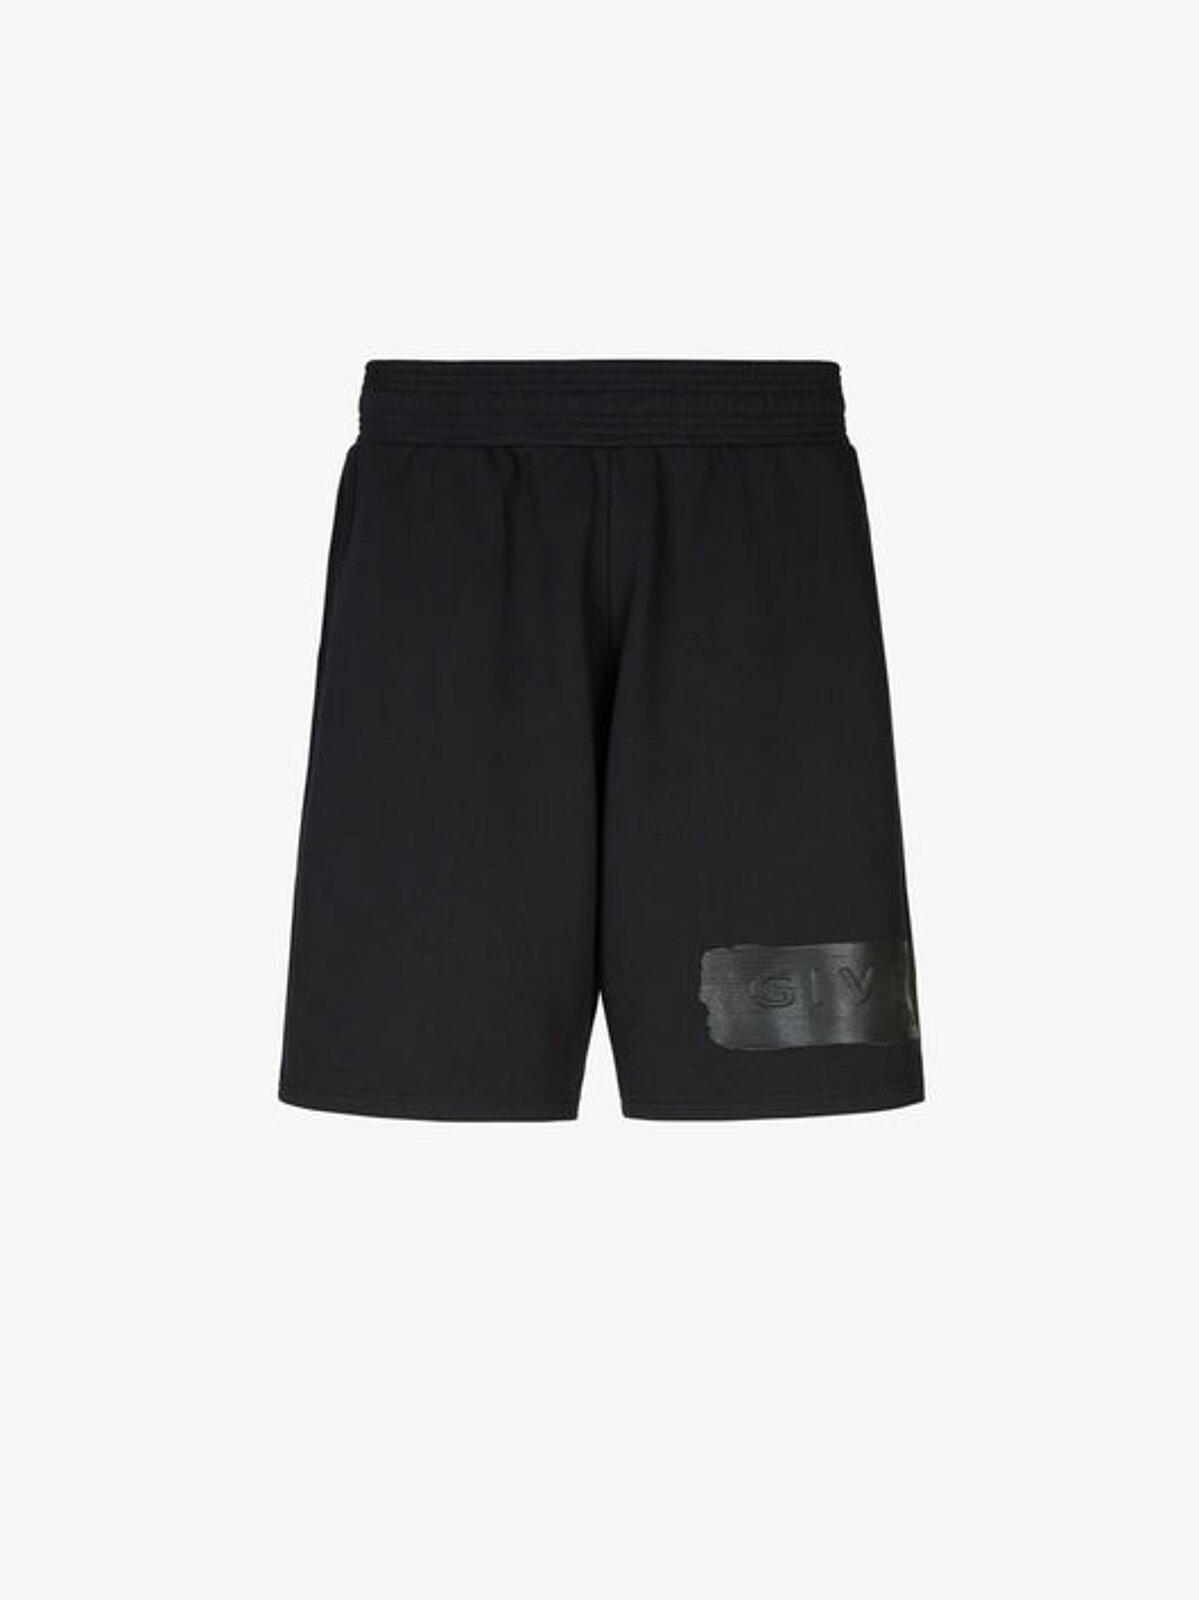 GIVENCHY bermuda with stripe - Givenchy